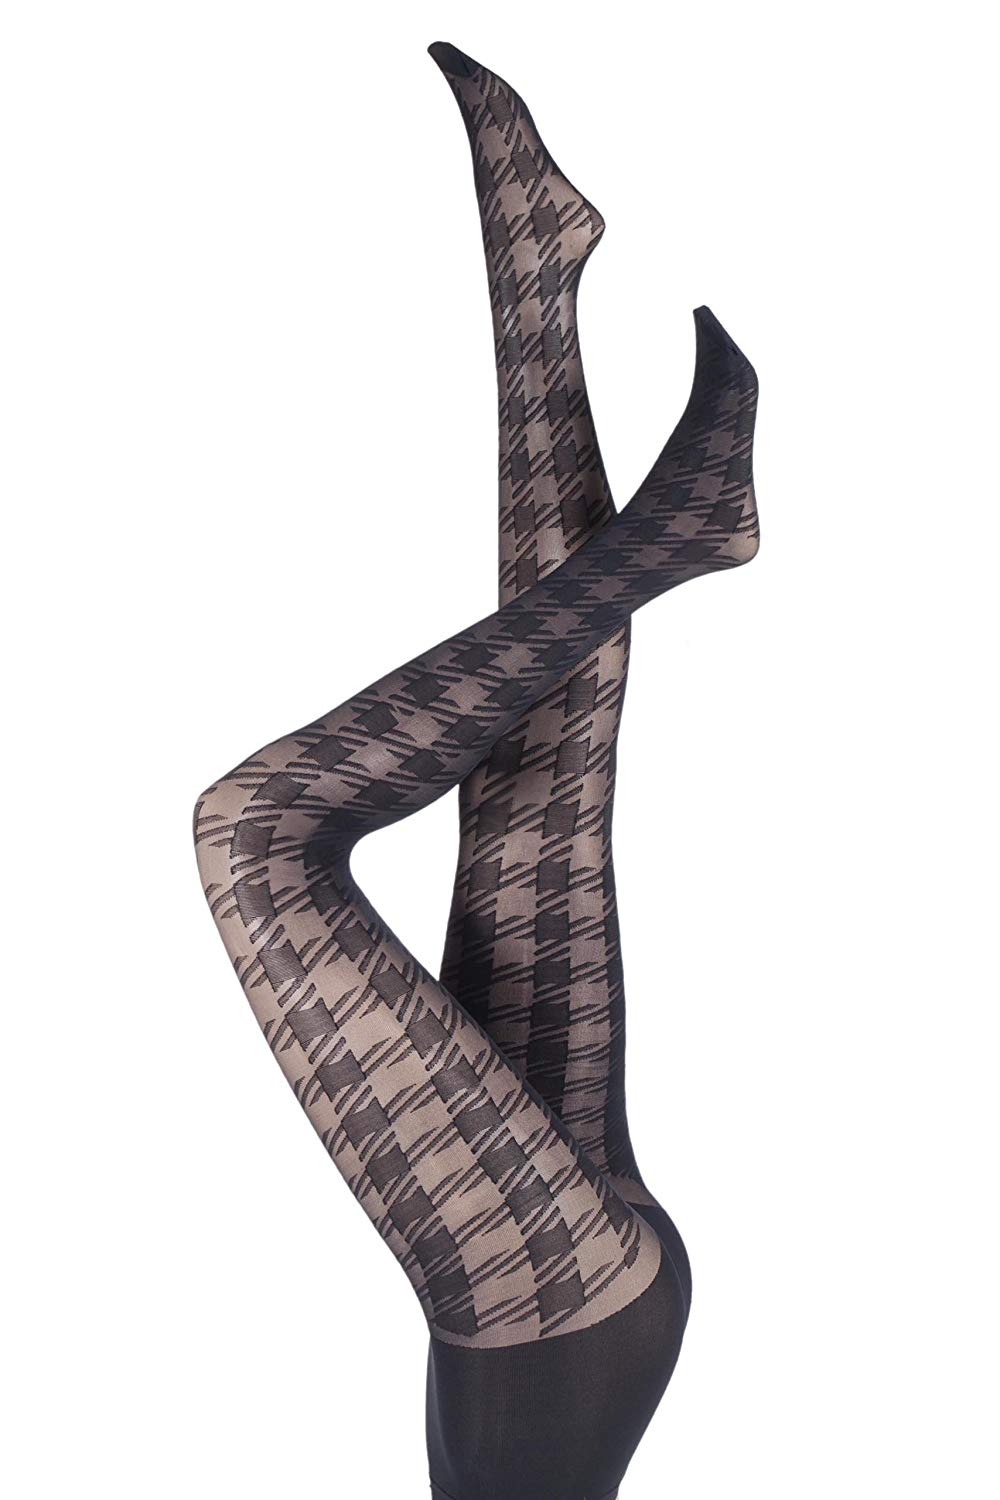 ad79f44fa12 Buy Pretty Polly House of Holland Reverse Polka Dot Pantyhose One ...